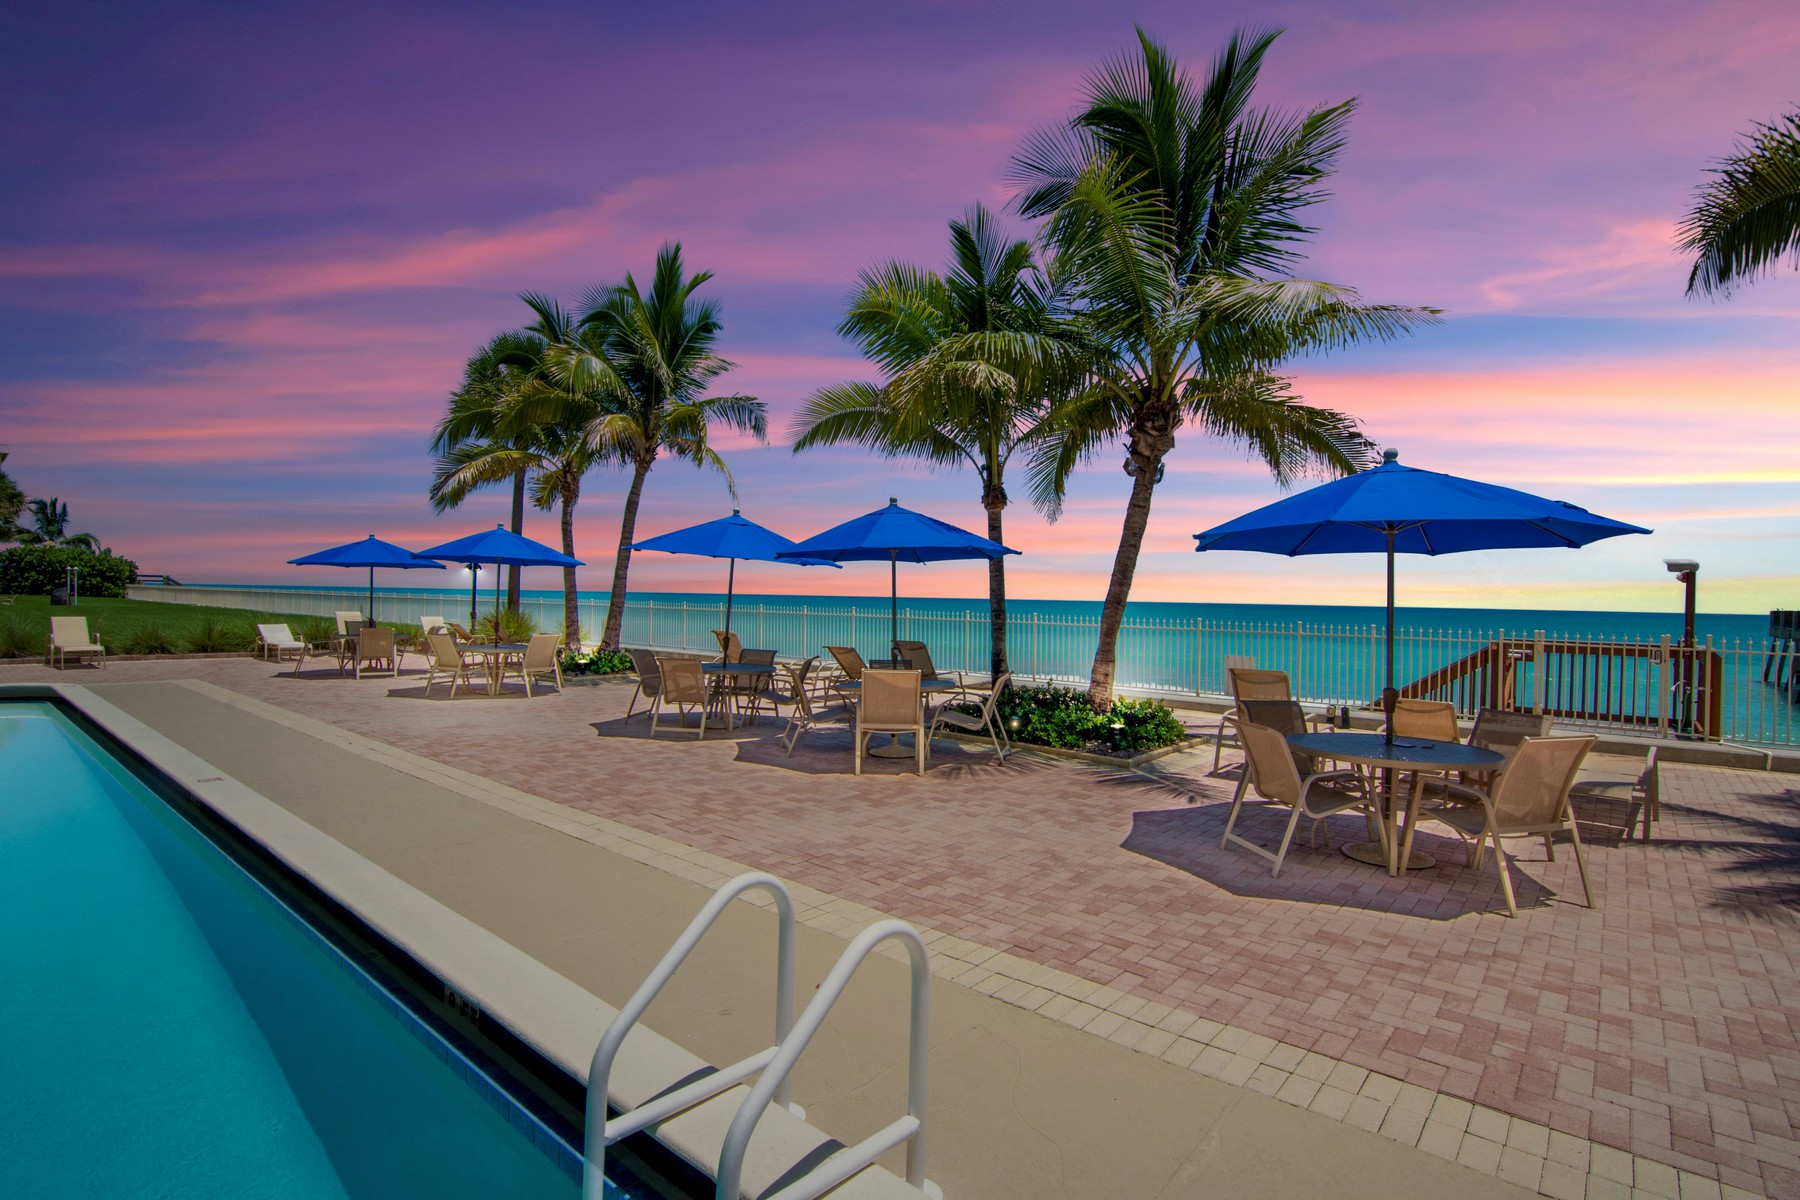 Direct Oceanfront Opulent Three Bedroom With Garage 4800 Highway A1A #116 Vero Beach, Florida 32963 Estados Unidos